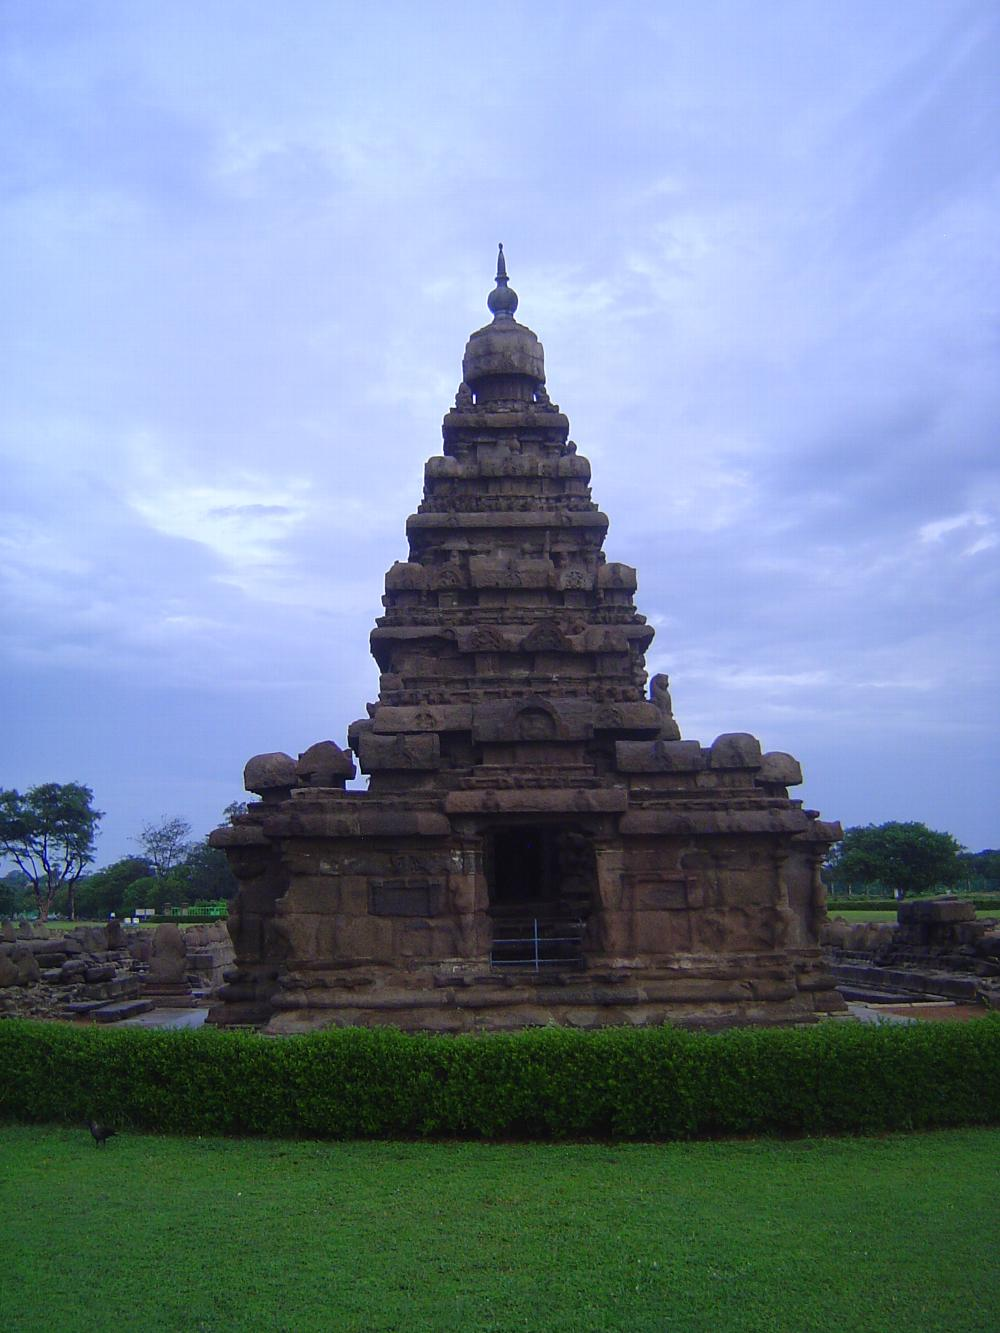 Peninsular India: Mamallapuram 3: Shore Temple picture 7